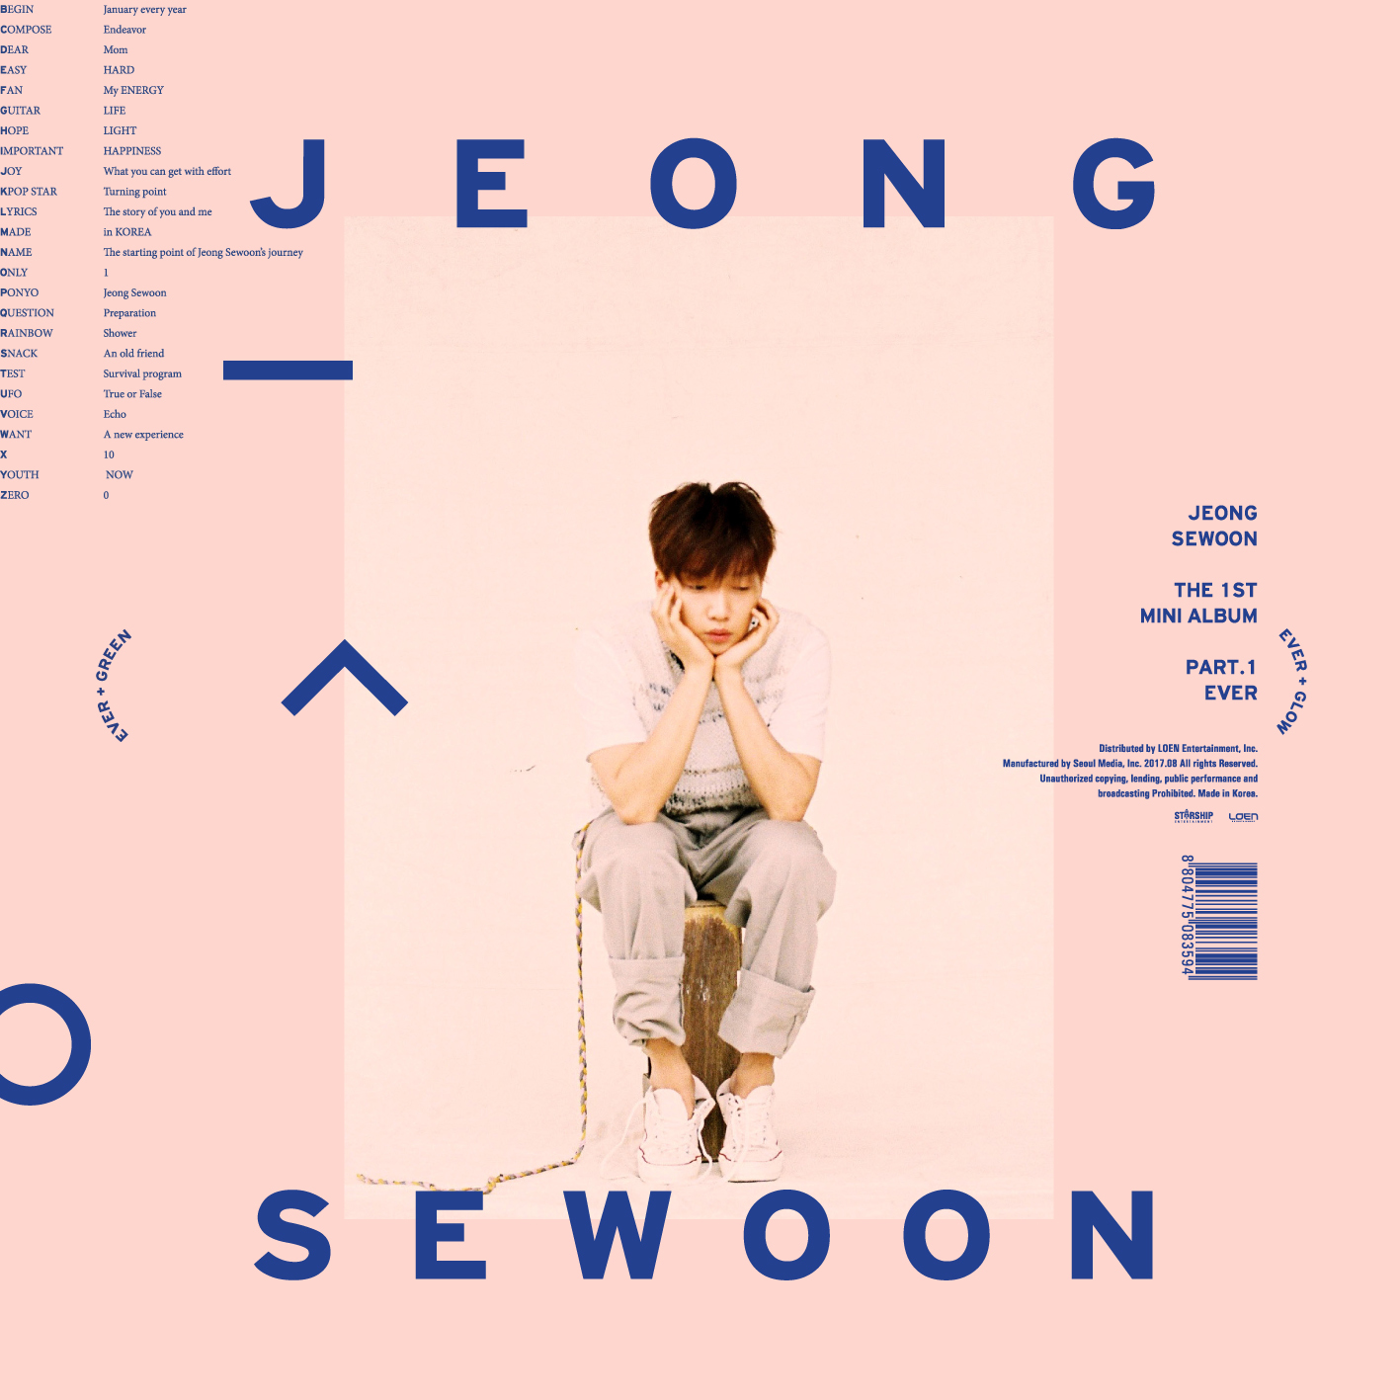 The 1st Mini Album (Jeong Sewoon)